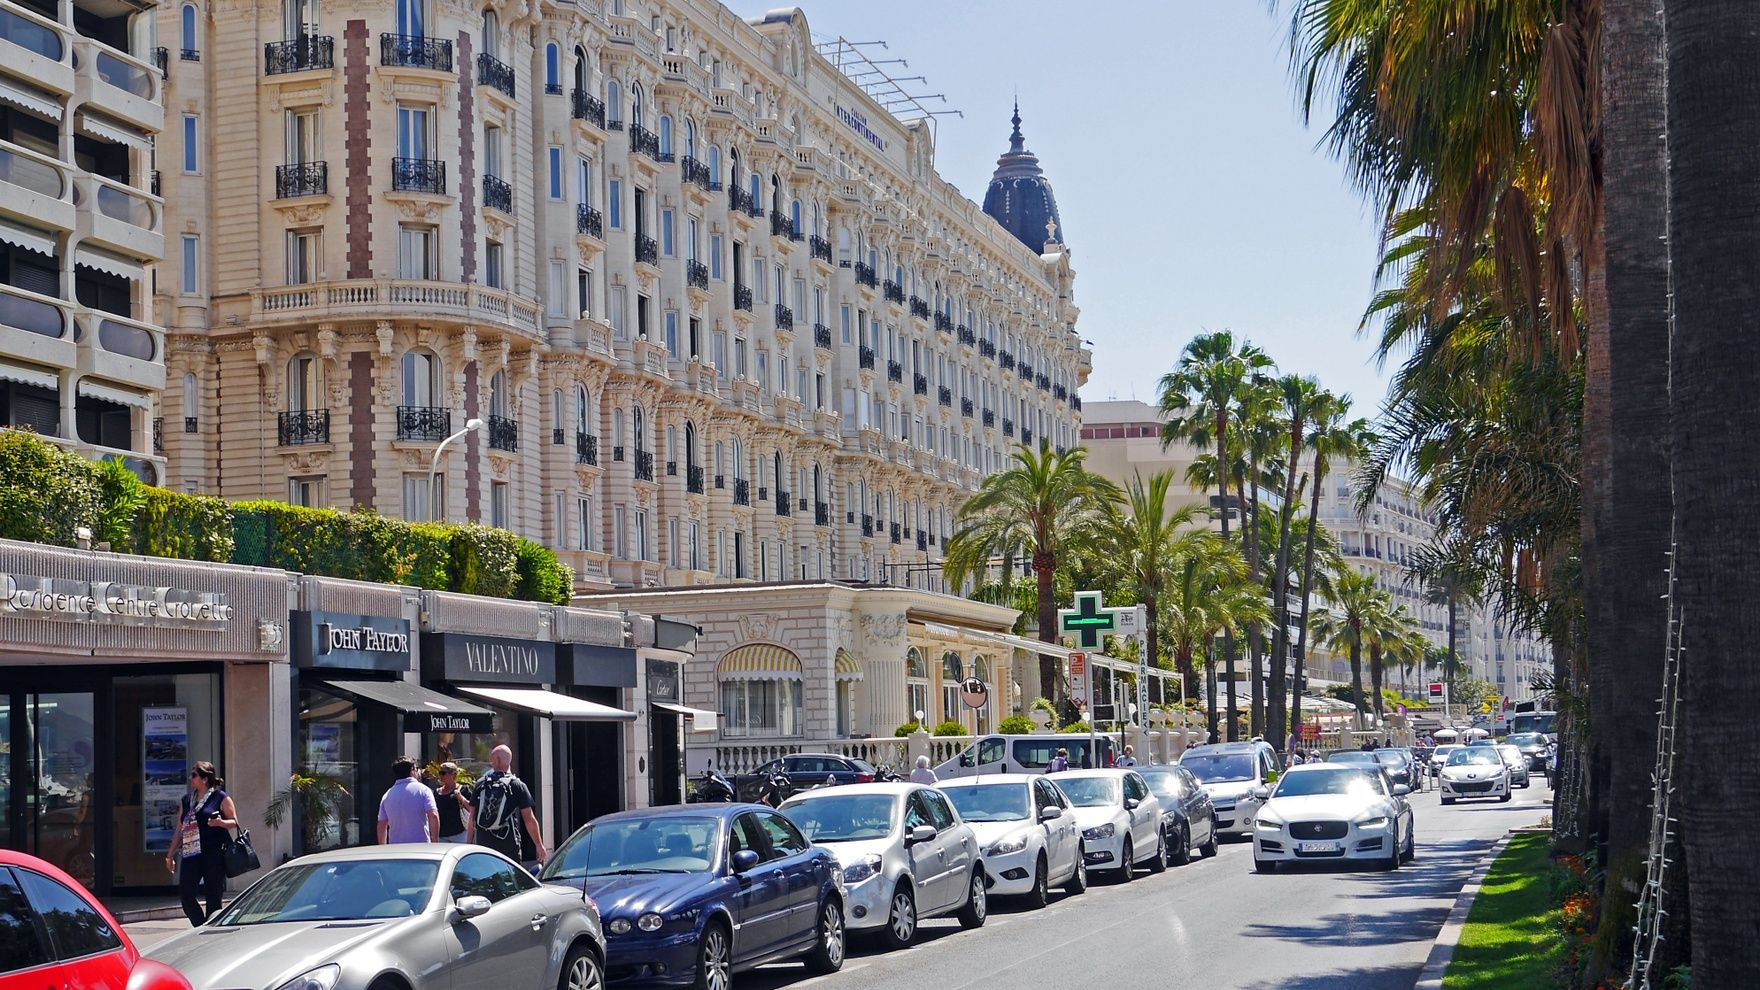 A voyage around the French Riviera